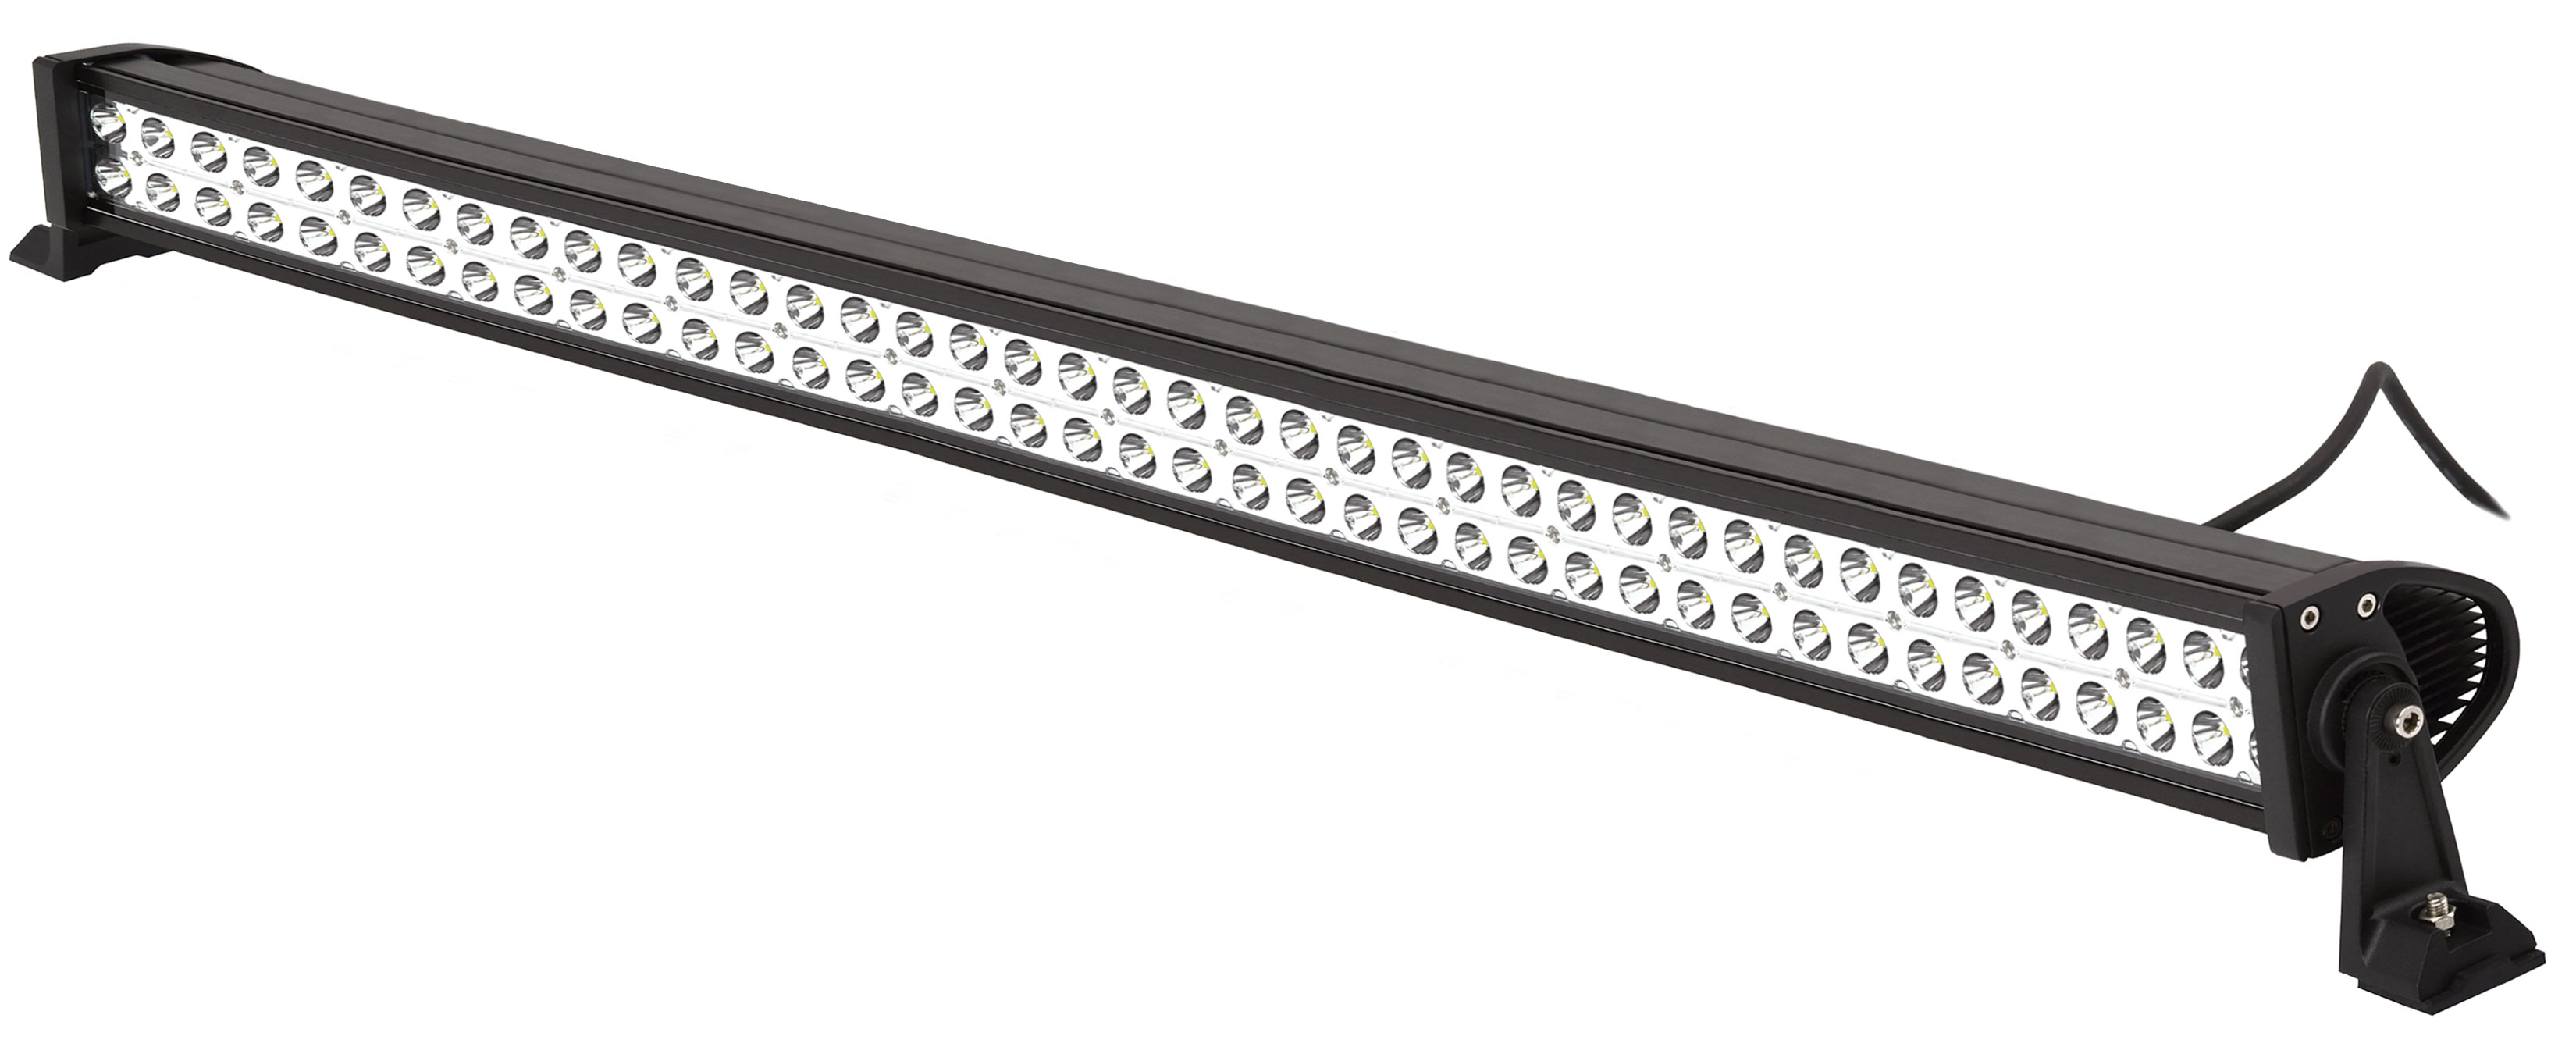 Cipa 42 Inch 240w Led Light Bar With 80 3w Led